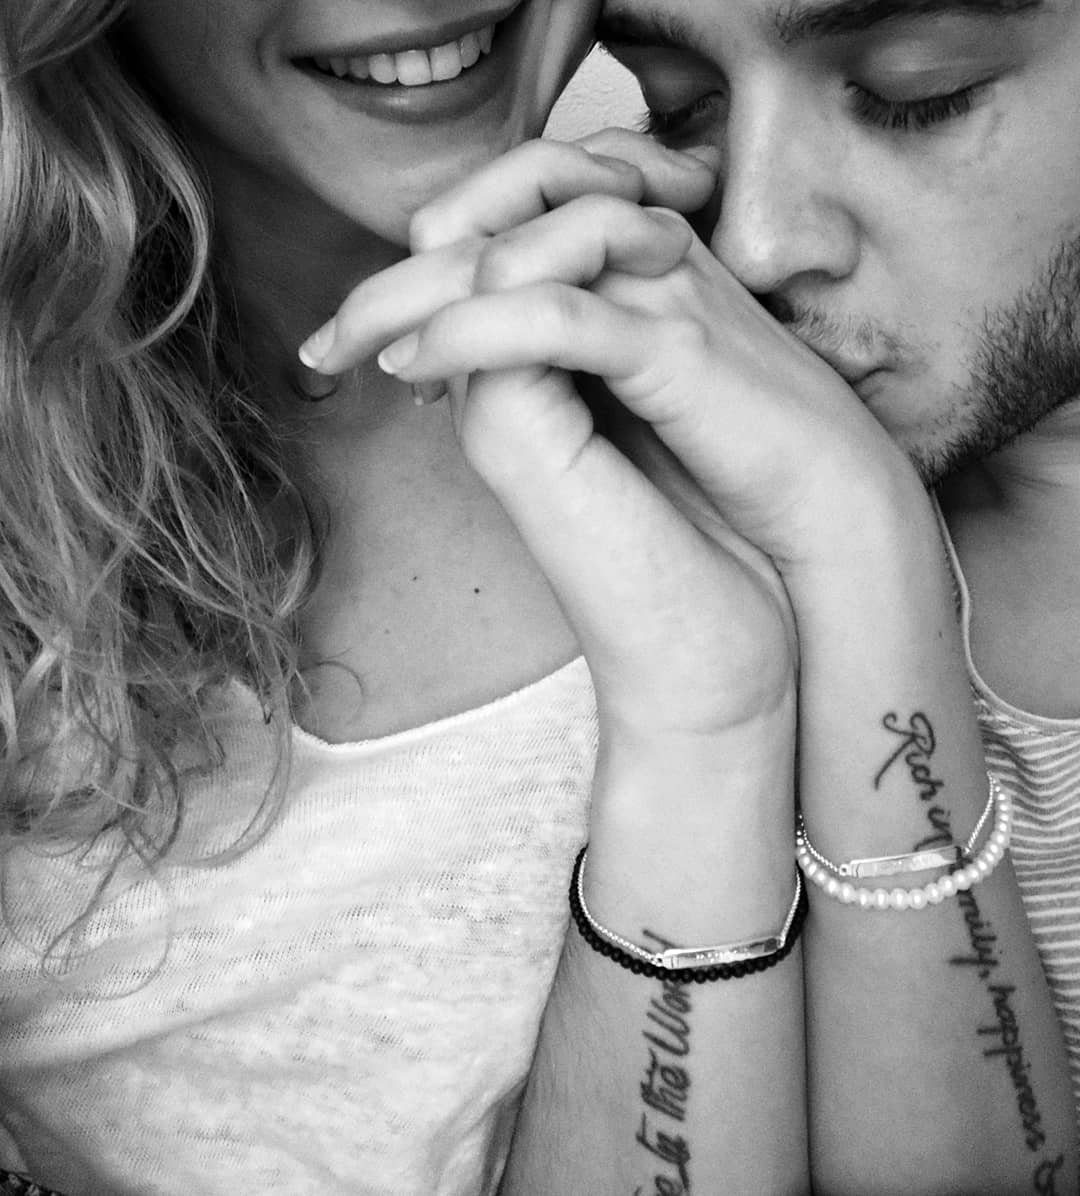 RT @haenni__luca: So proud and happy that I found you ❤️ #happy #love https://t.co/jBoNLyJ85H